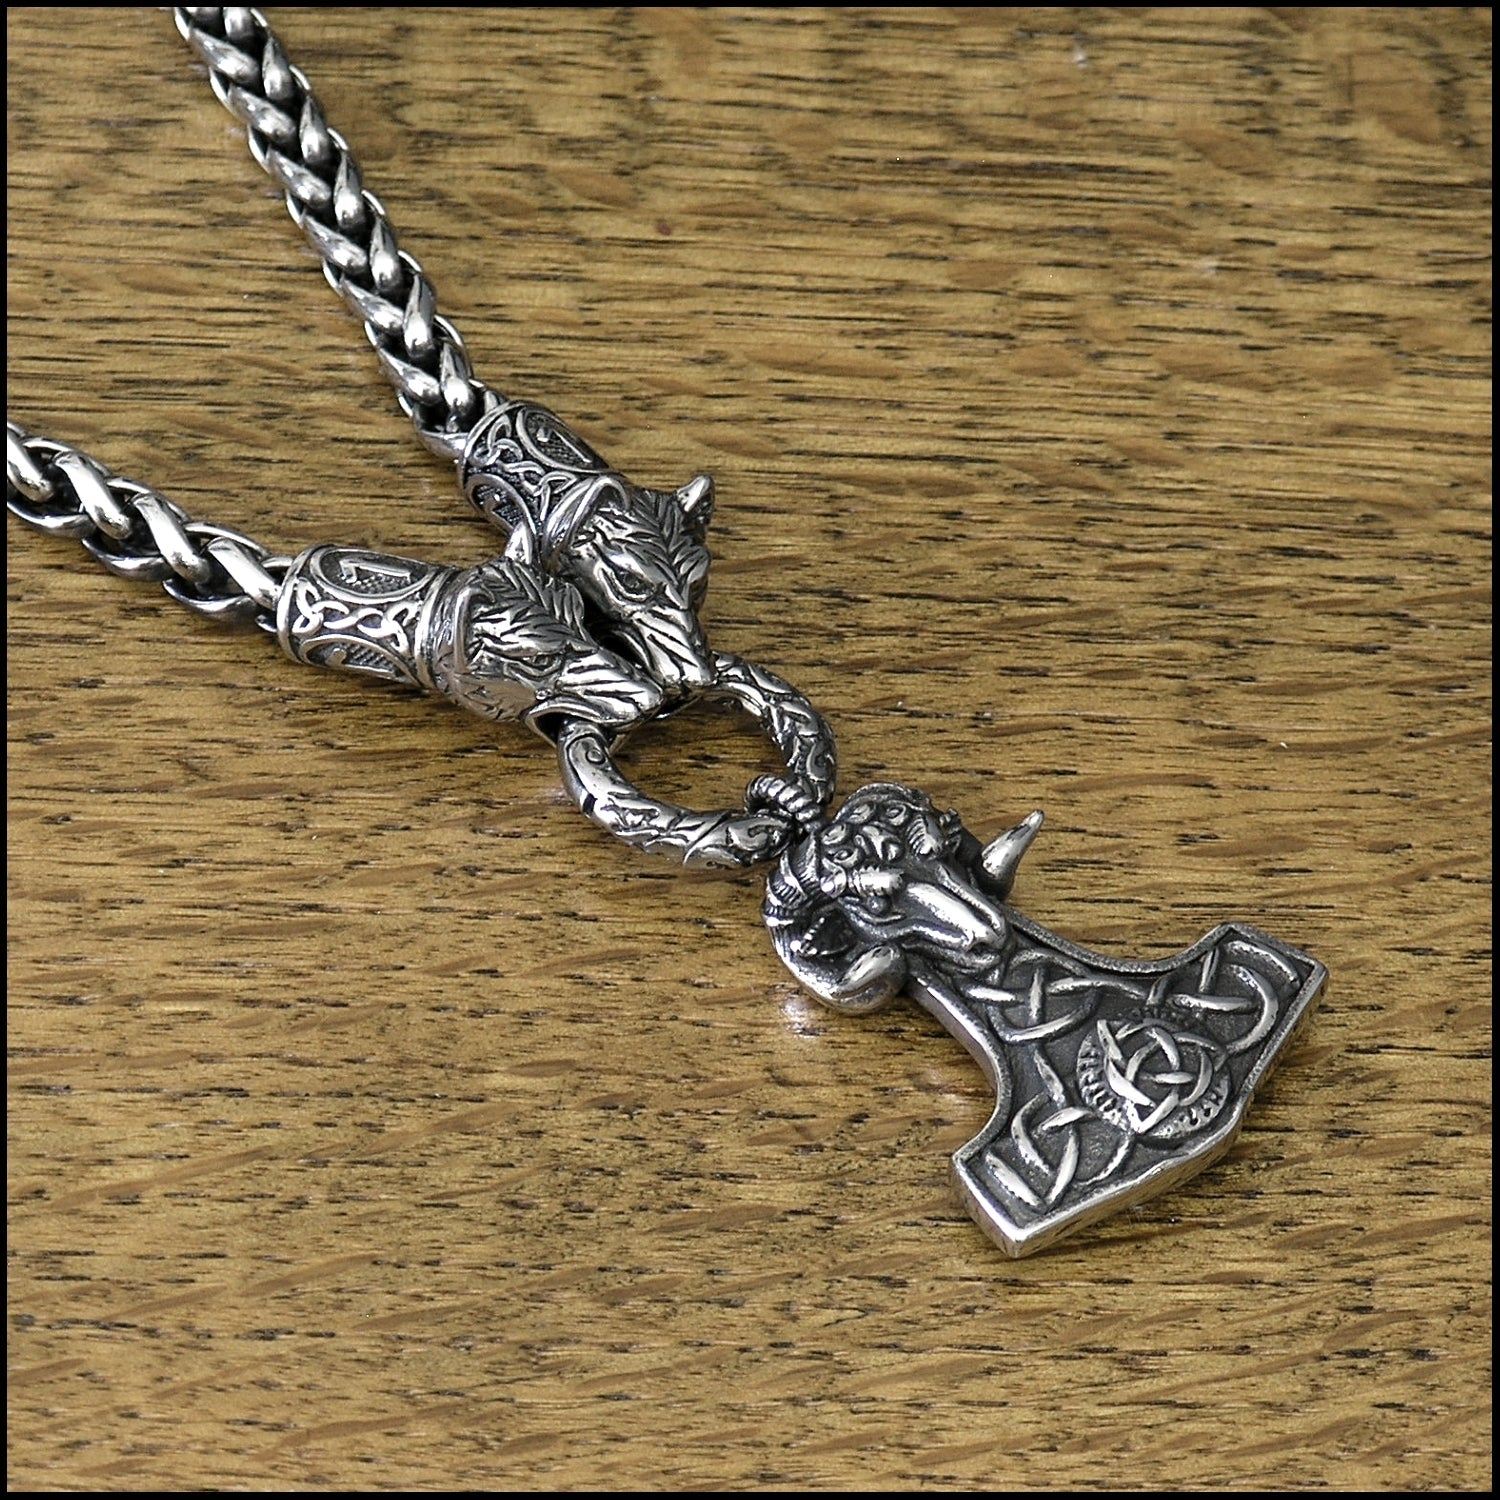 Wolf Warrior Necklace Featuring Antique Viking Braid Chain w/Beautifully Sculptured Ram Head Mjolnir